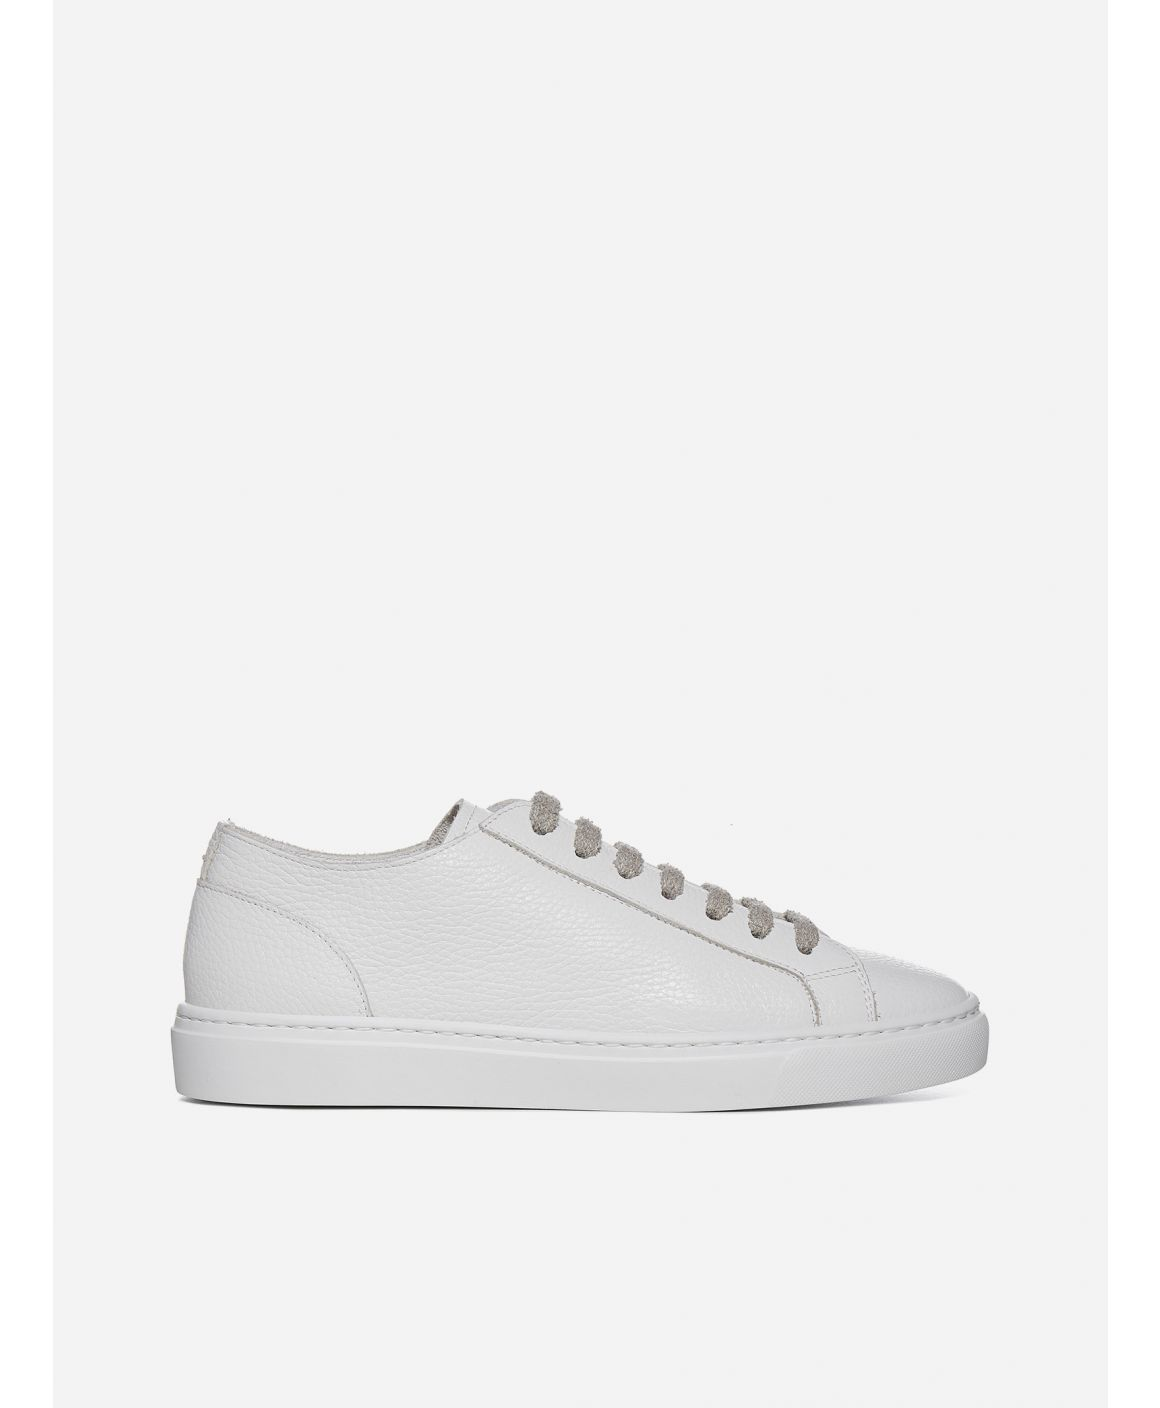 Nova leather low-top sneakers